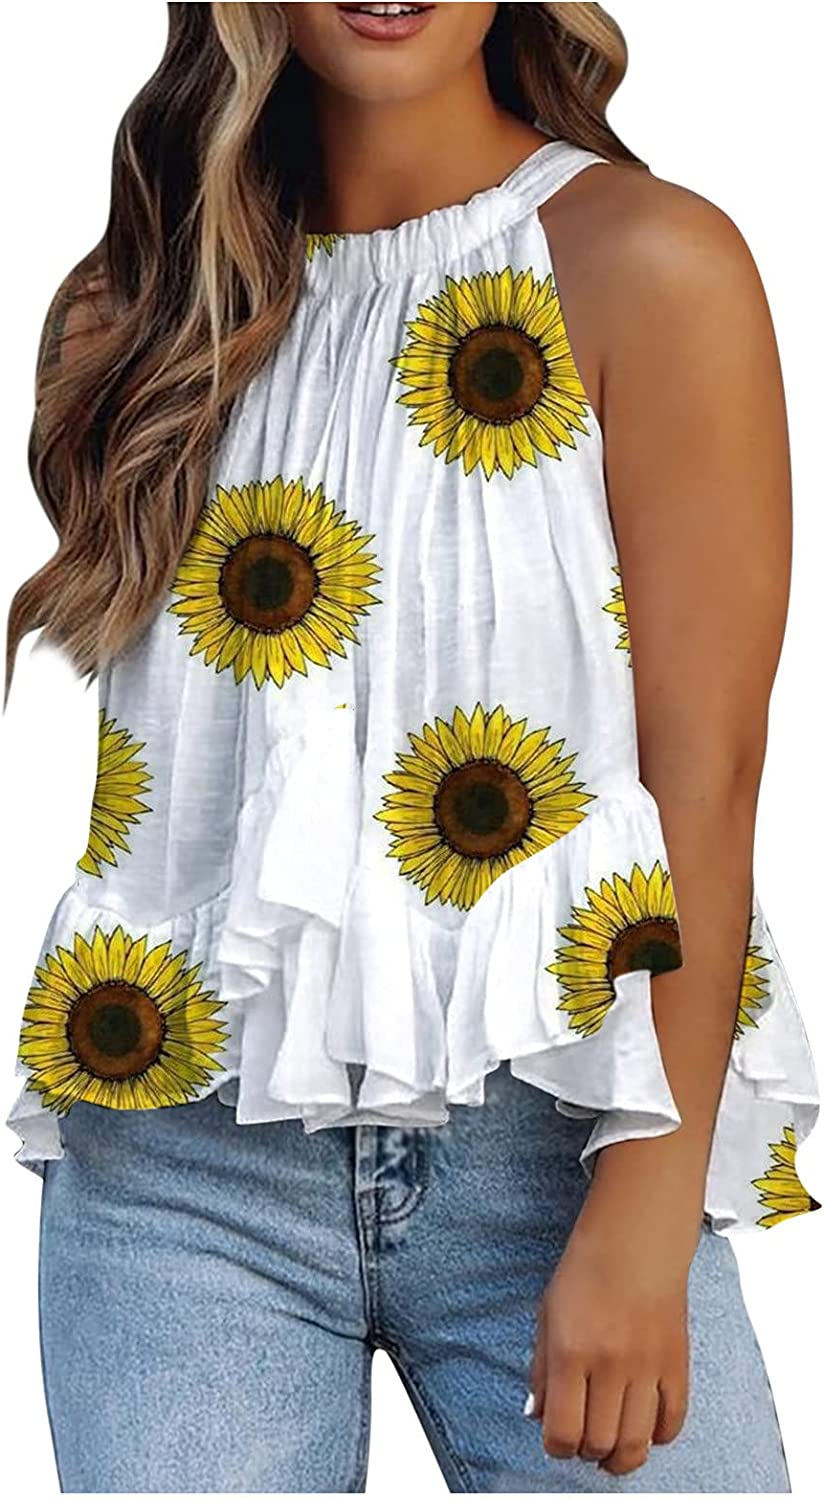 FABIURT Tank Tops for Women,Womens Summer Fashion 4th of July Printed Sleeveless Vest T-Shirt Casual Loose Cami Blouse